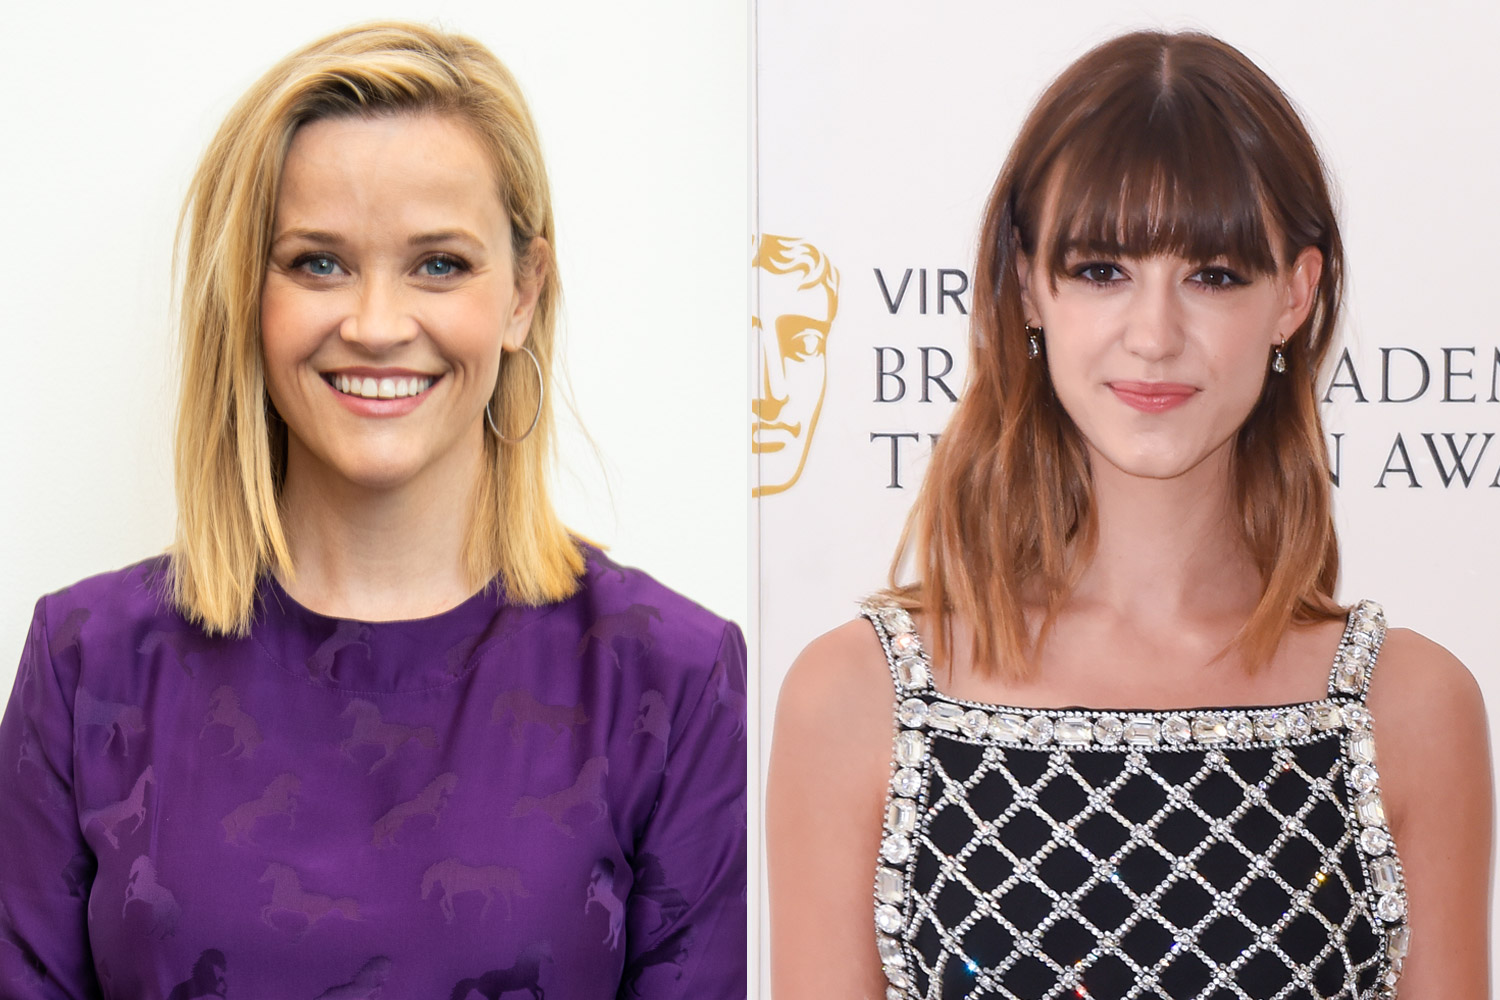 Reese Witherspoon 's Where the Crawdads Sing Adaptation Starring Daisy Edgar-Jones Set for June 2022 Release